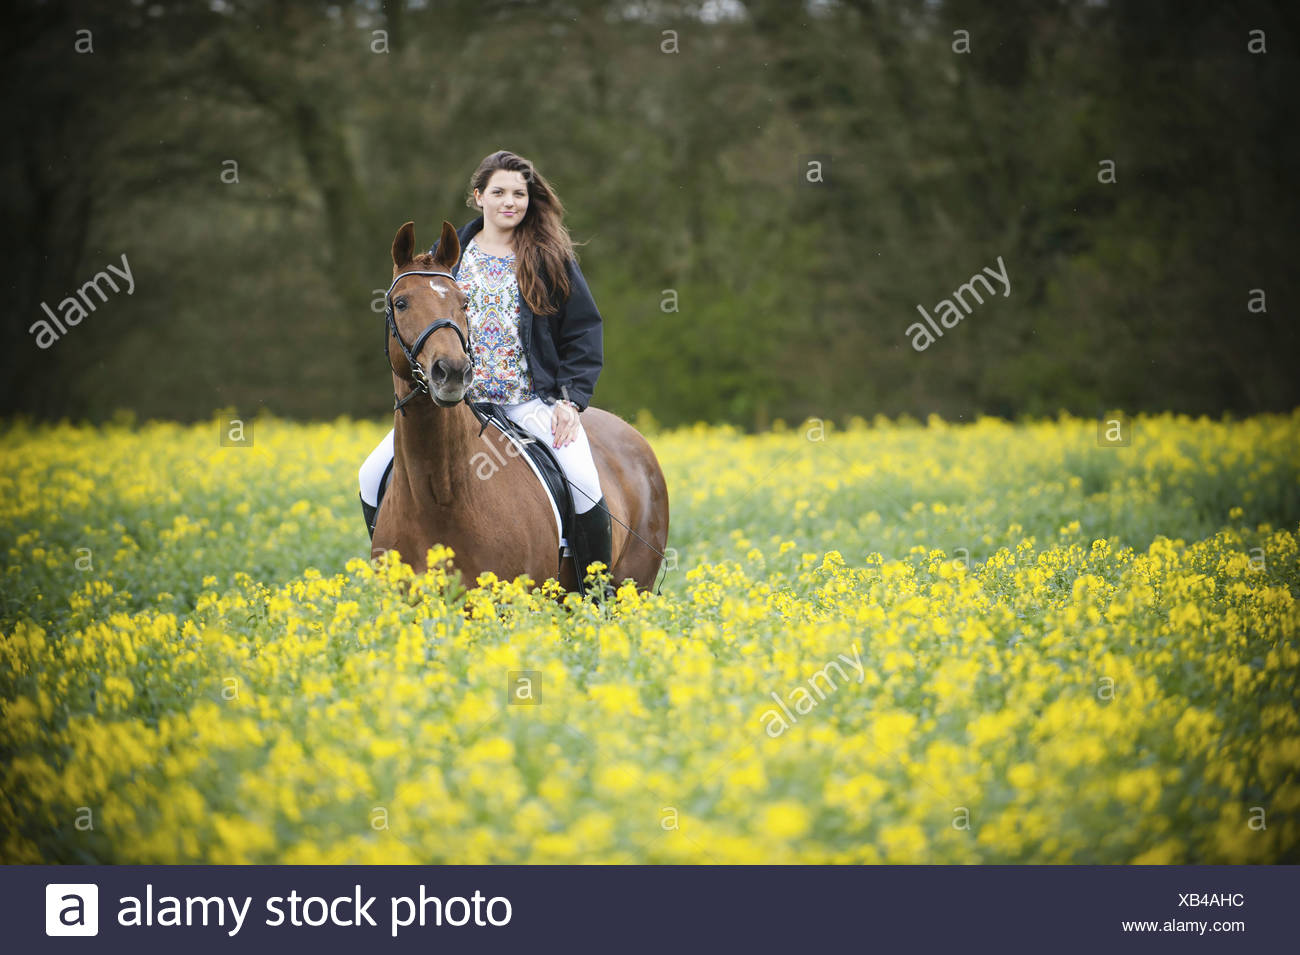 A woman riding on a brown horse through a flowering yellow mustard crop in a field  England - Stock Image